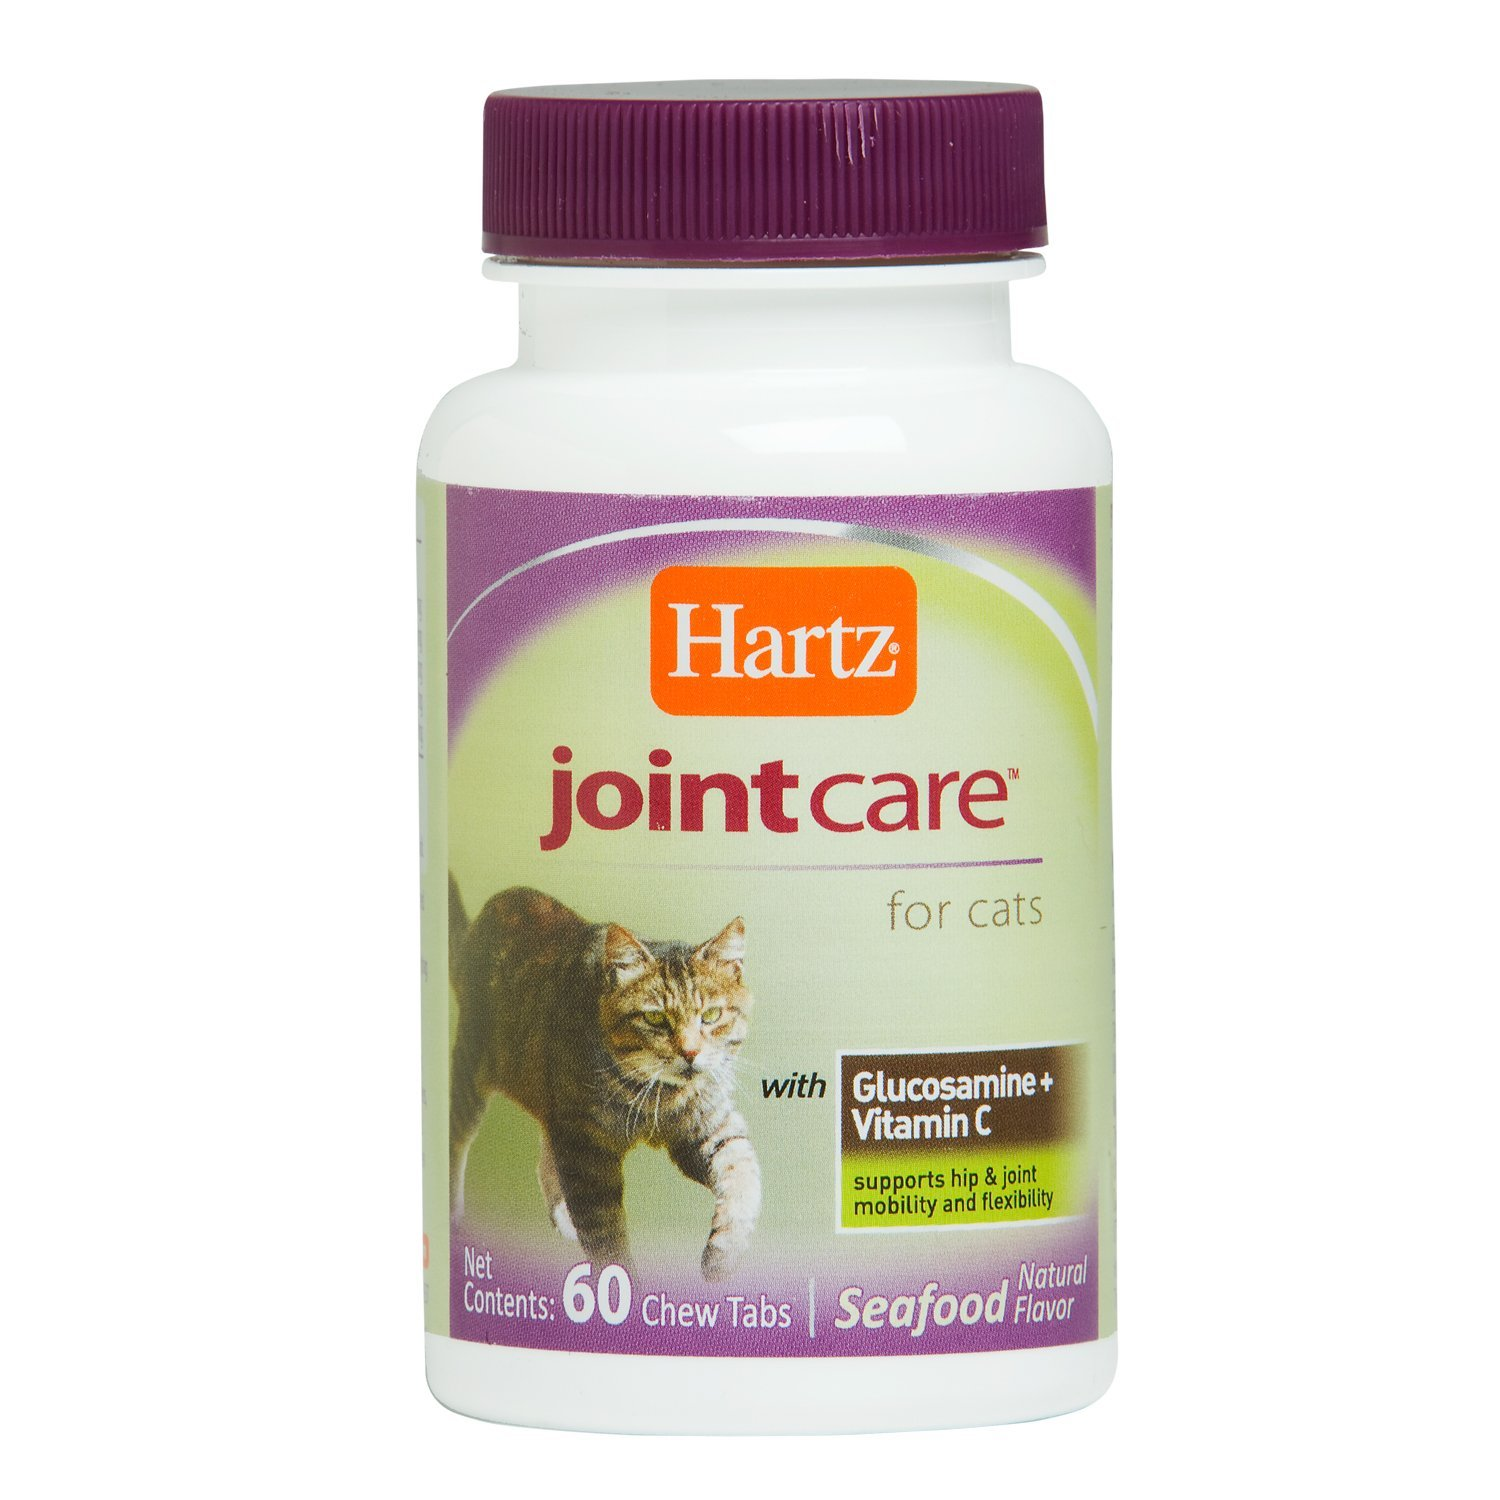 Hartz Joint Care for Cats